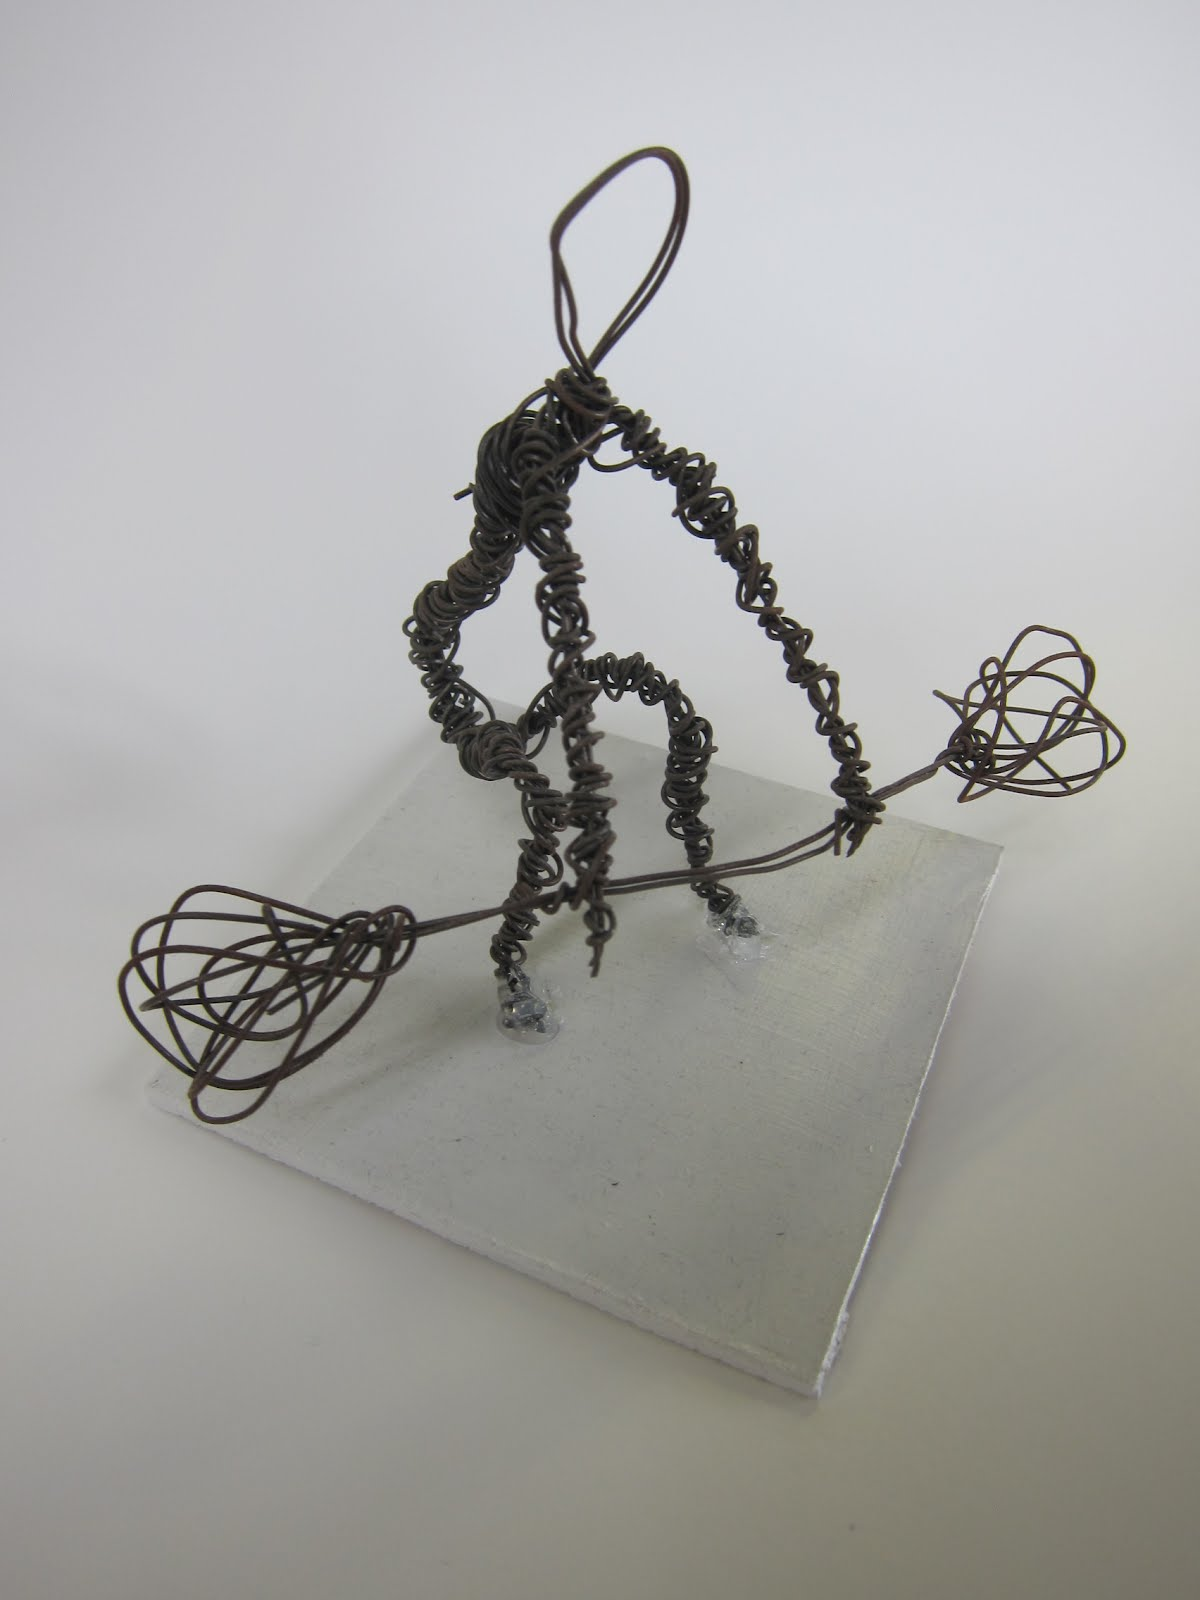 how to make wire sculpture human figure